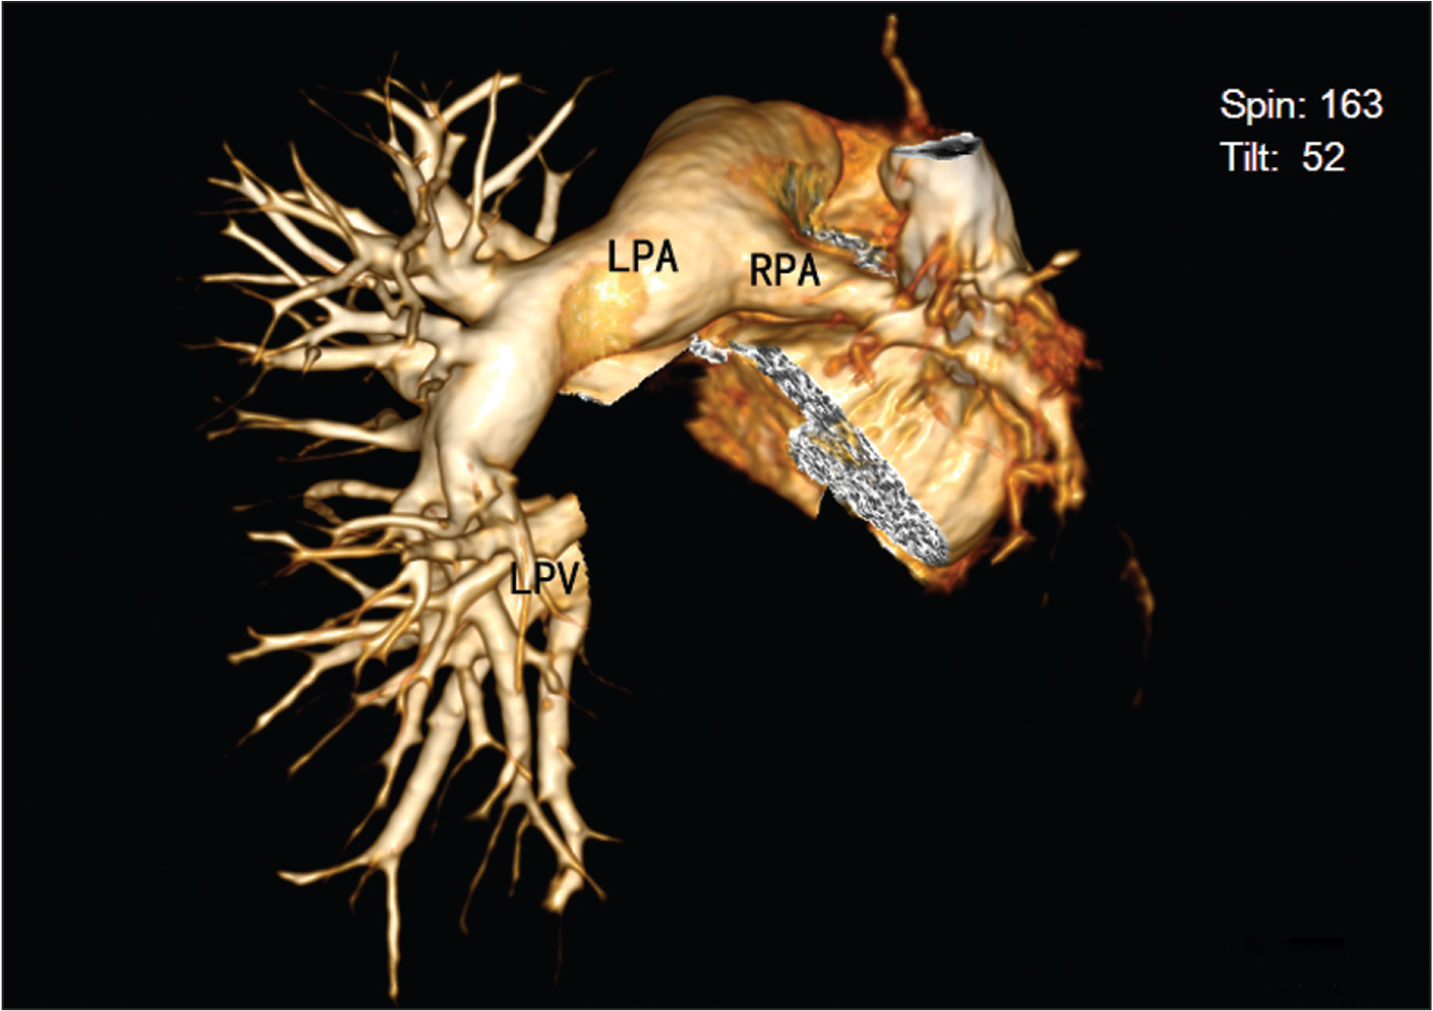 Three-dimensional reconstruction image shows thin right pulmonary artery with fewer branches. LPA, left pulmonary artery; LPV, left pulmonary vein; RPA, right pulmonary artery.